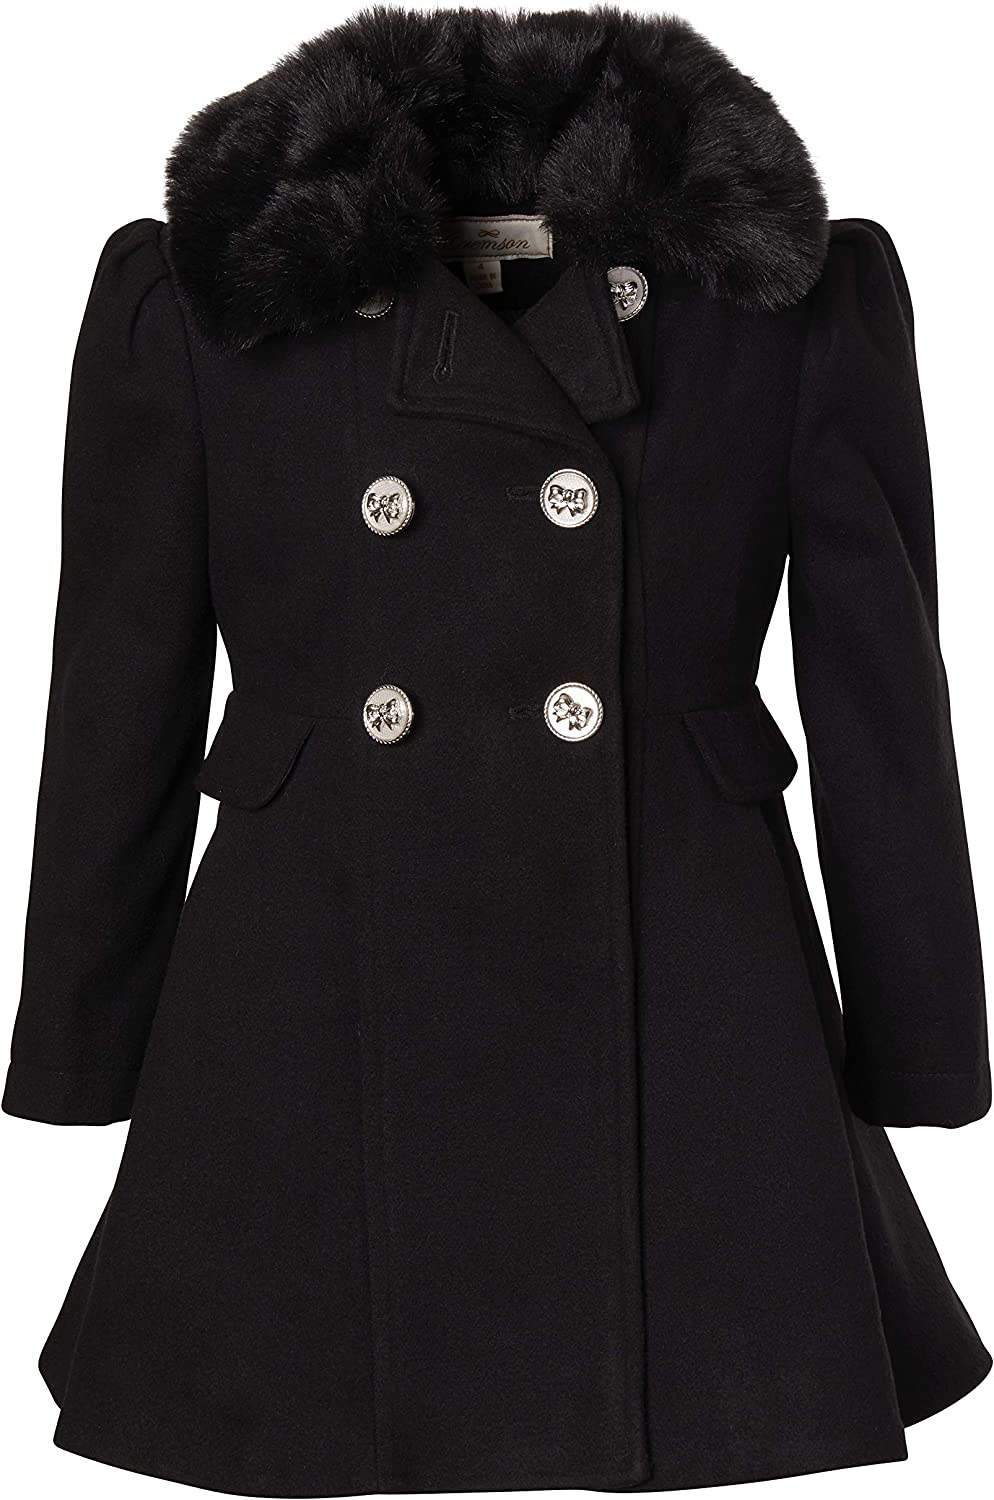 Cremson Girl Wool Look Winter Princess Bow Dress Pea Coat Jacket Faux Fur Collar